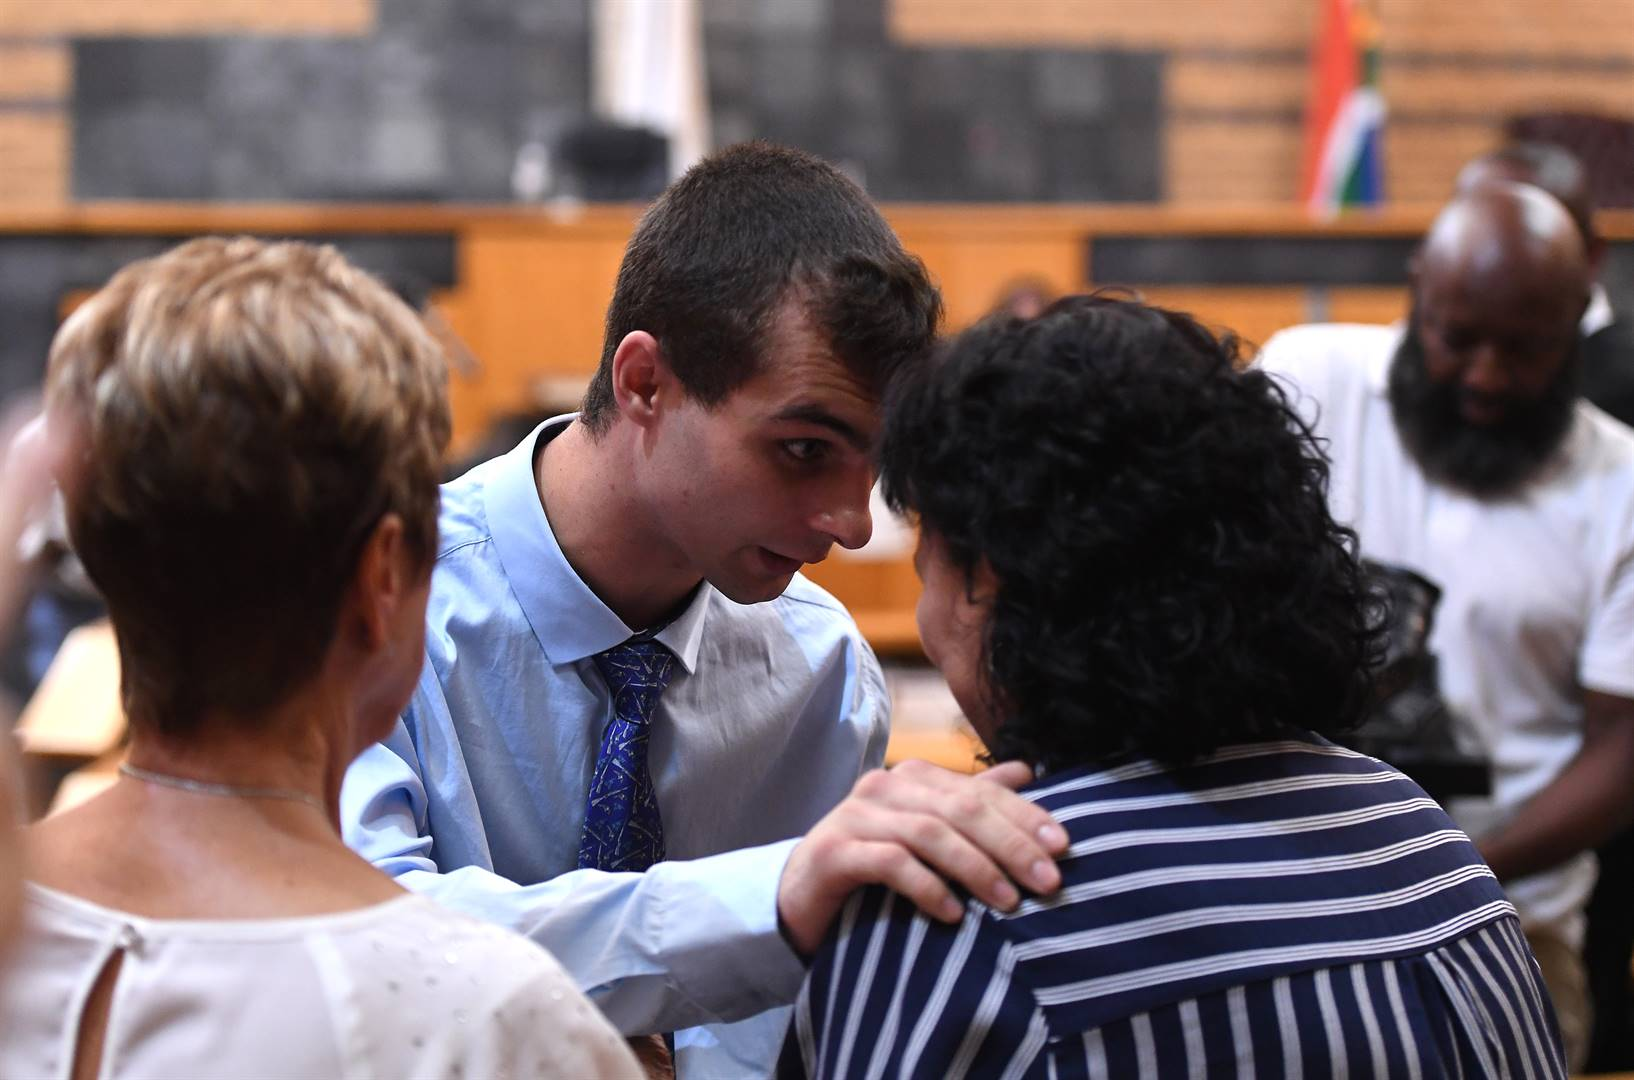 Xander Bylsma talks to his mother Mercia after being found guilty on Monday.